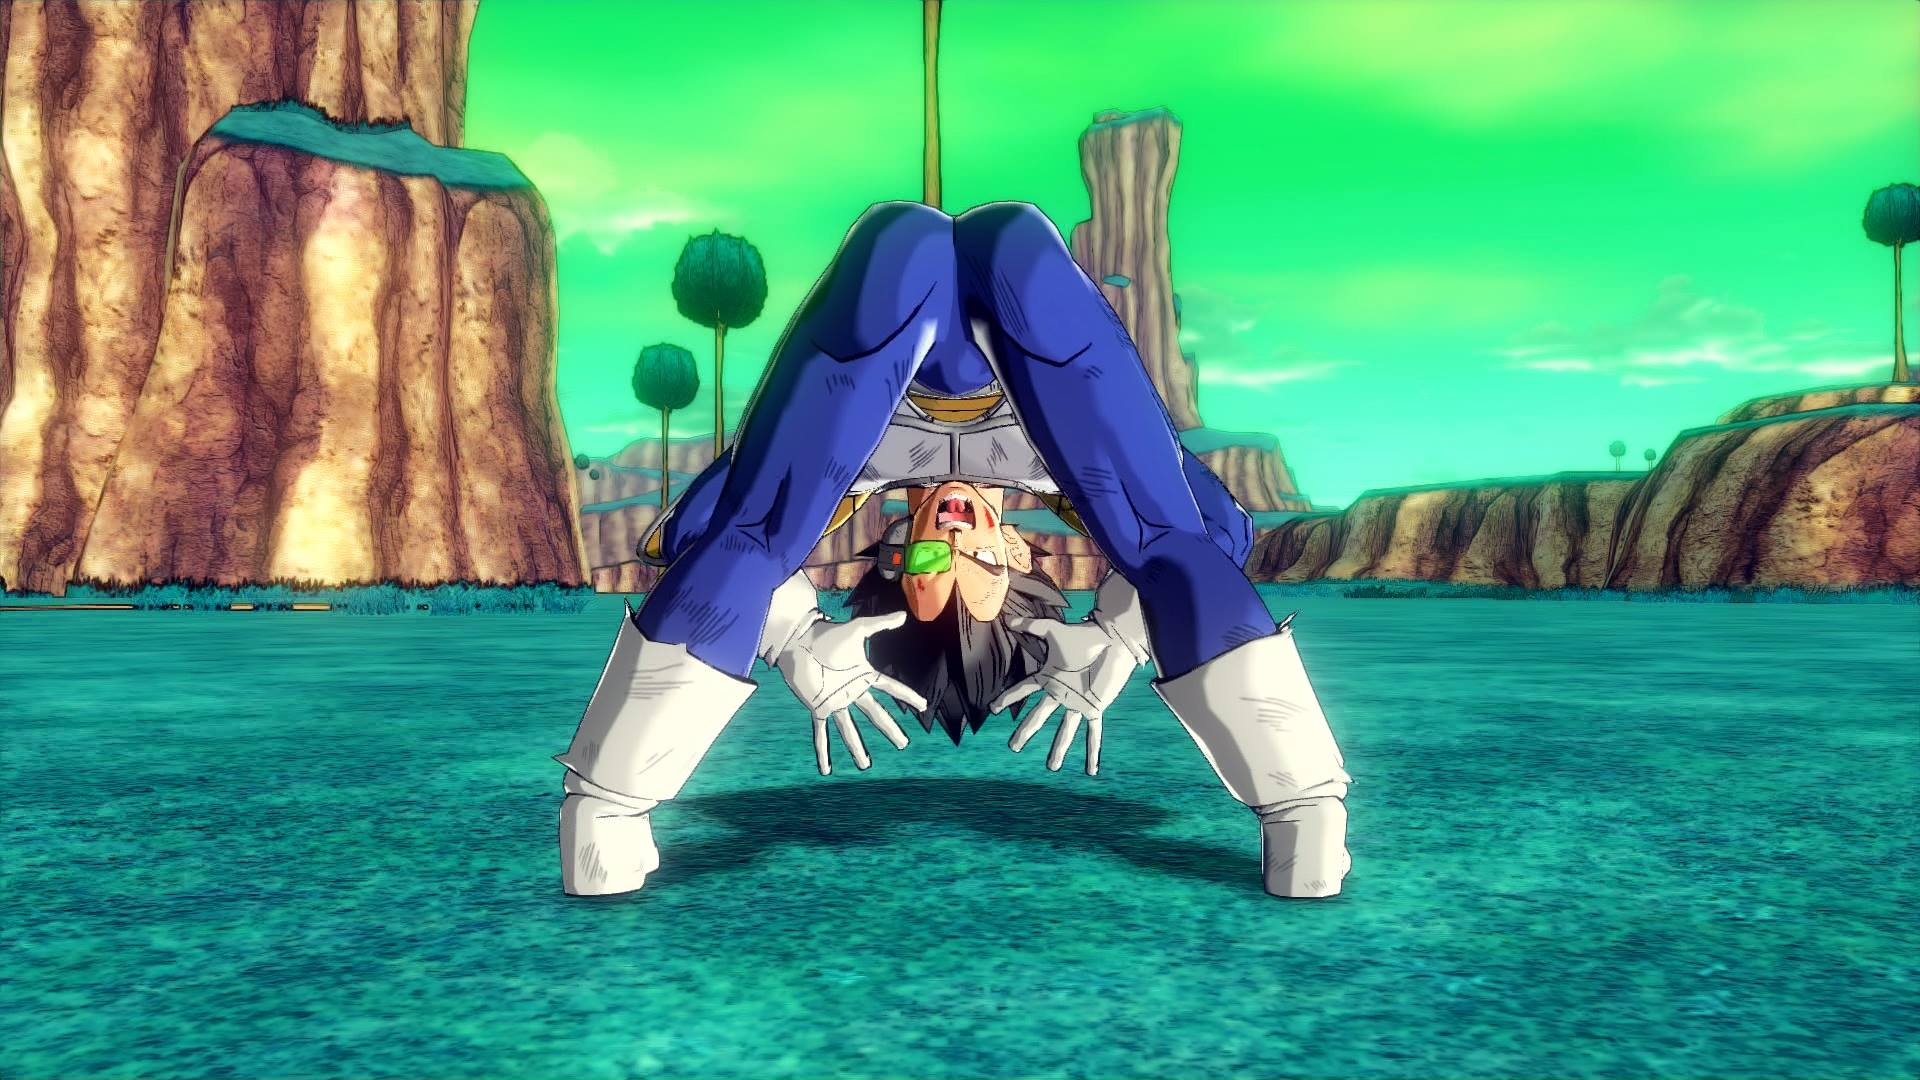 Dragon Ball Xenoverse screenshot 2648